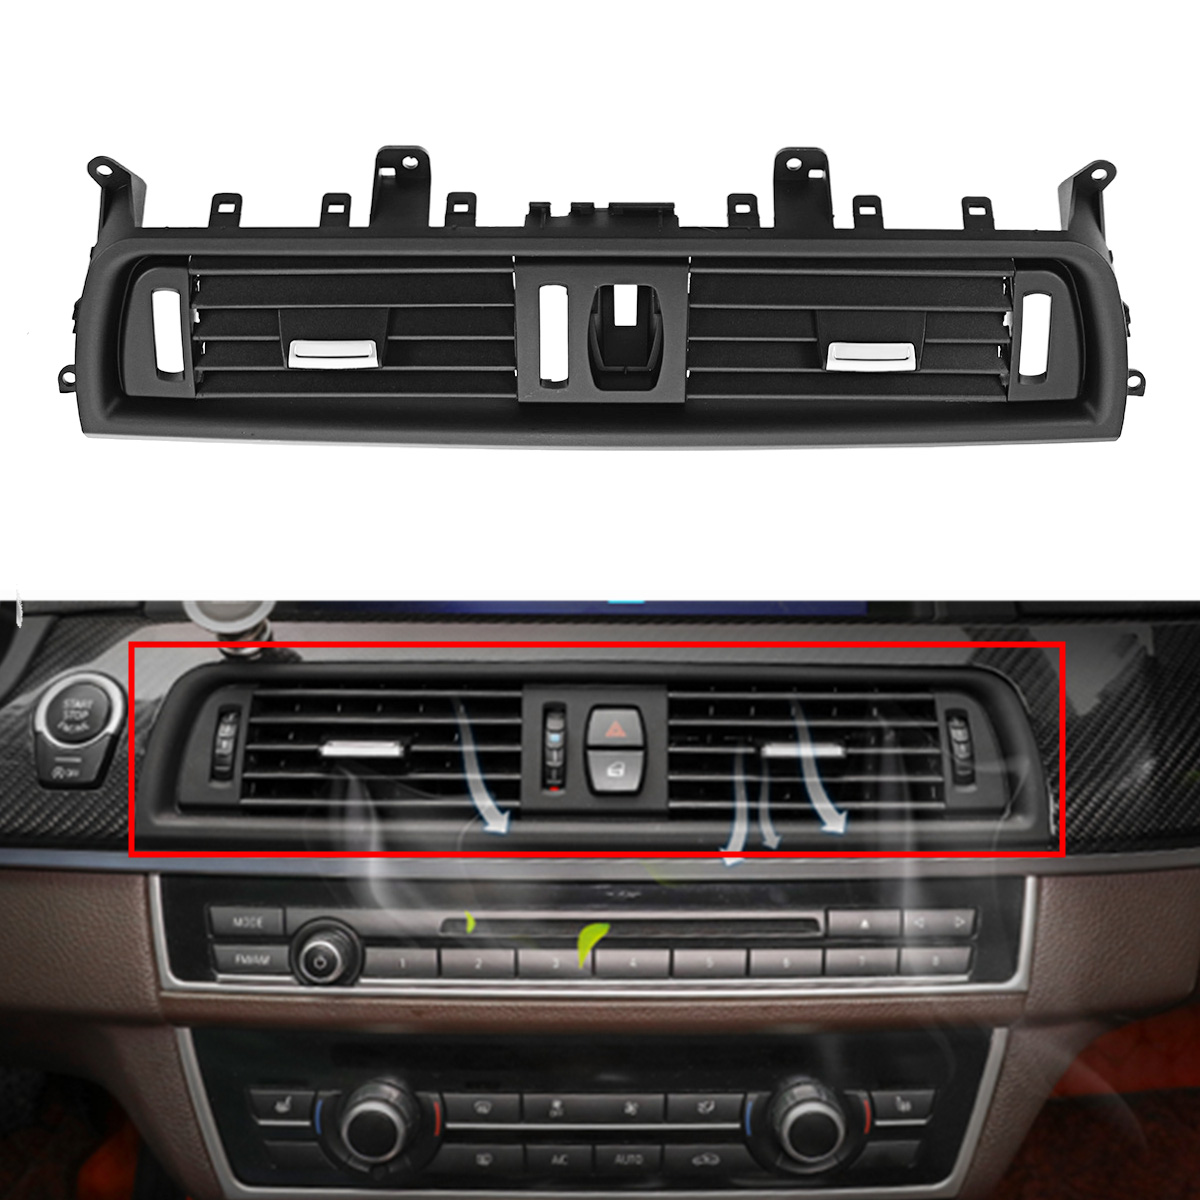 Car Plastic Front Console Grill Dash AC Air Vent Black Fit for BMW 5 Series 520 523 525 528 530 2010-2016 64229166885